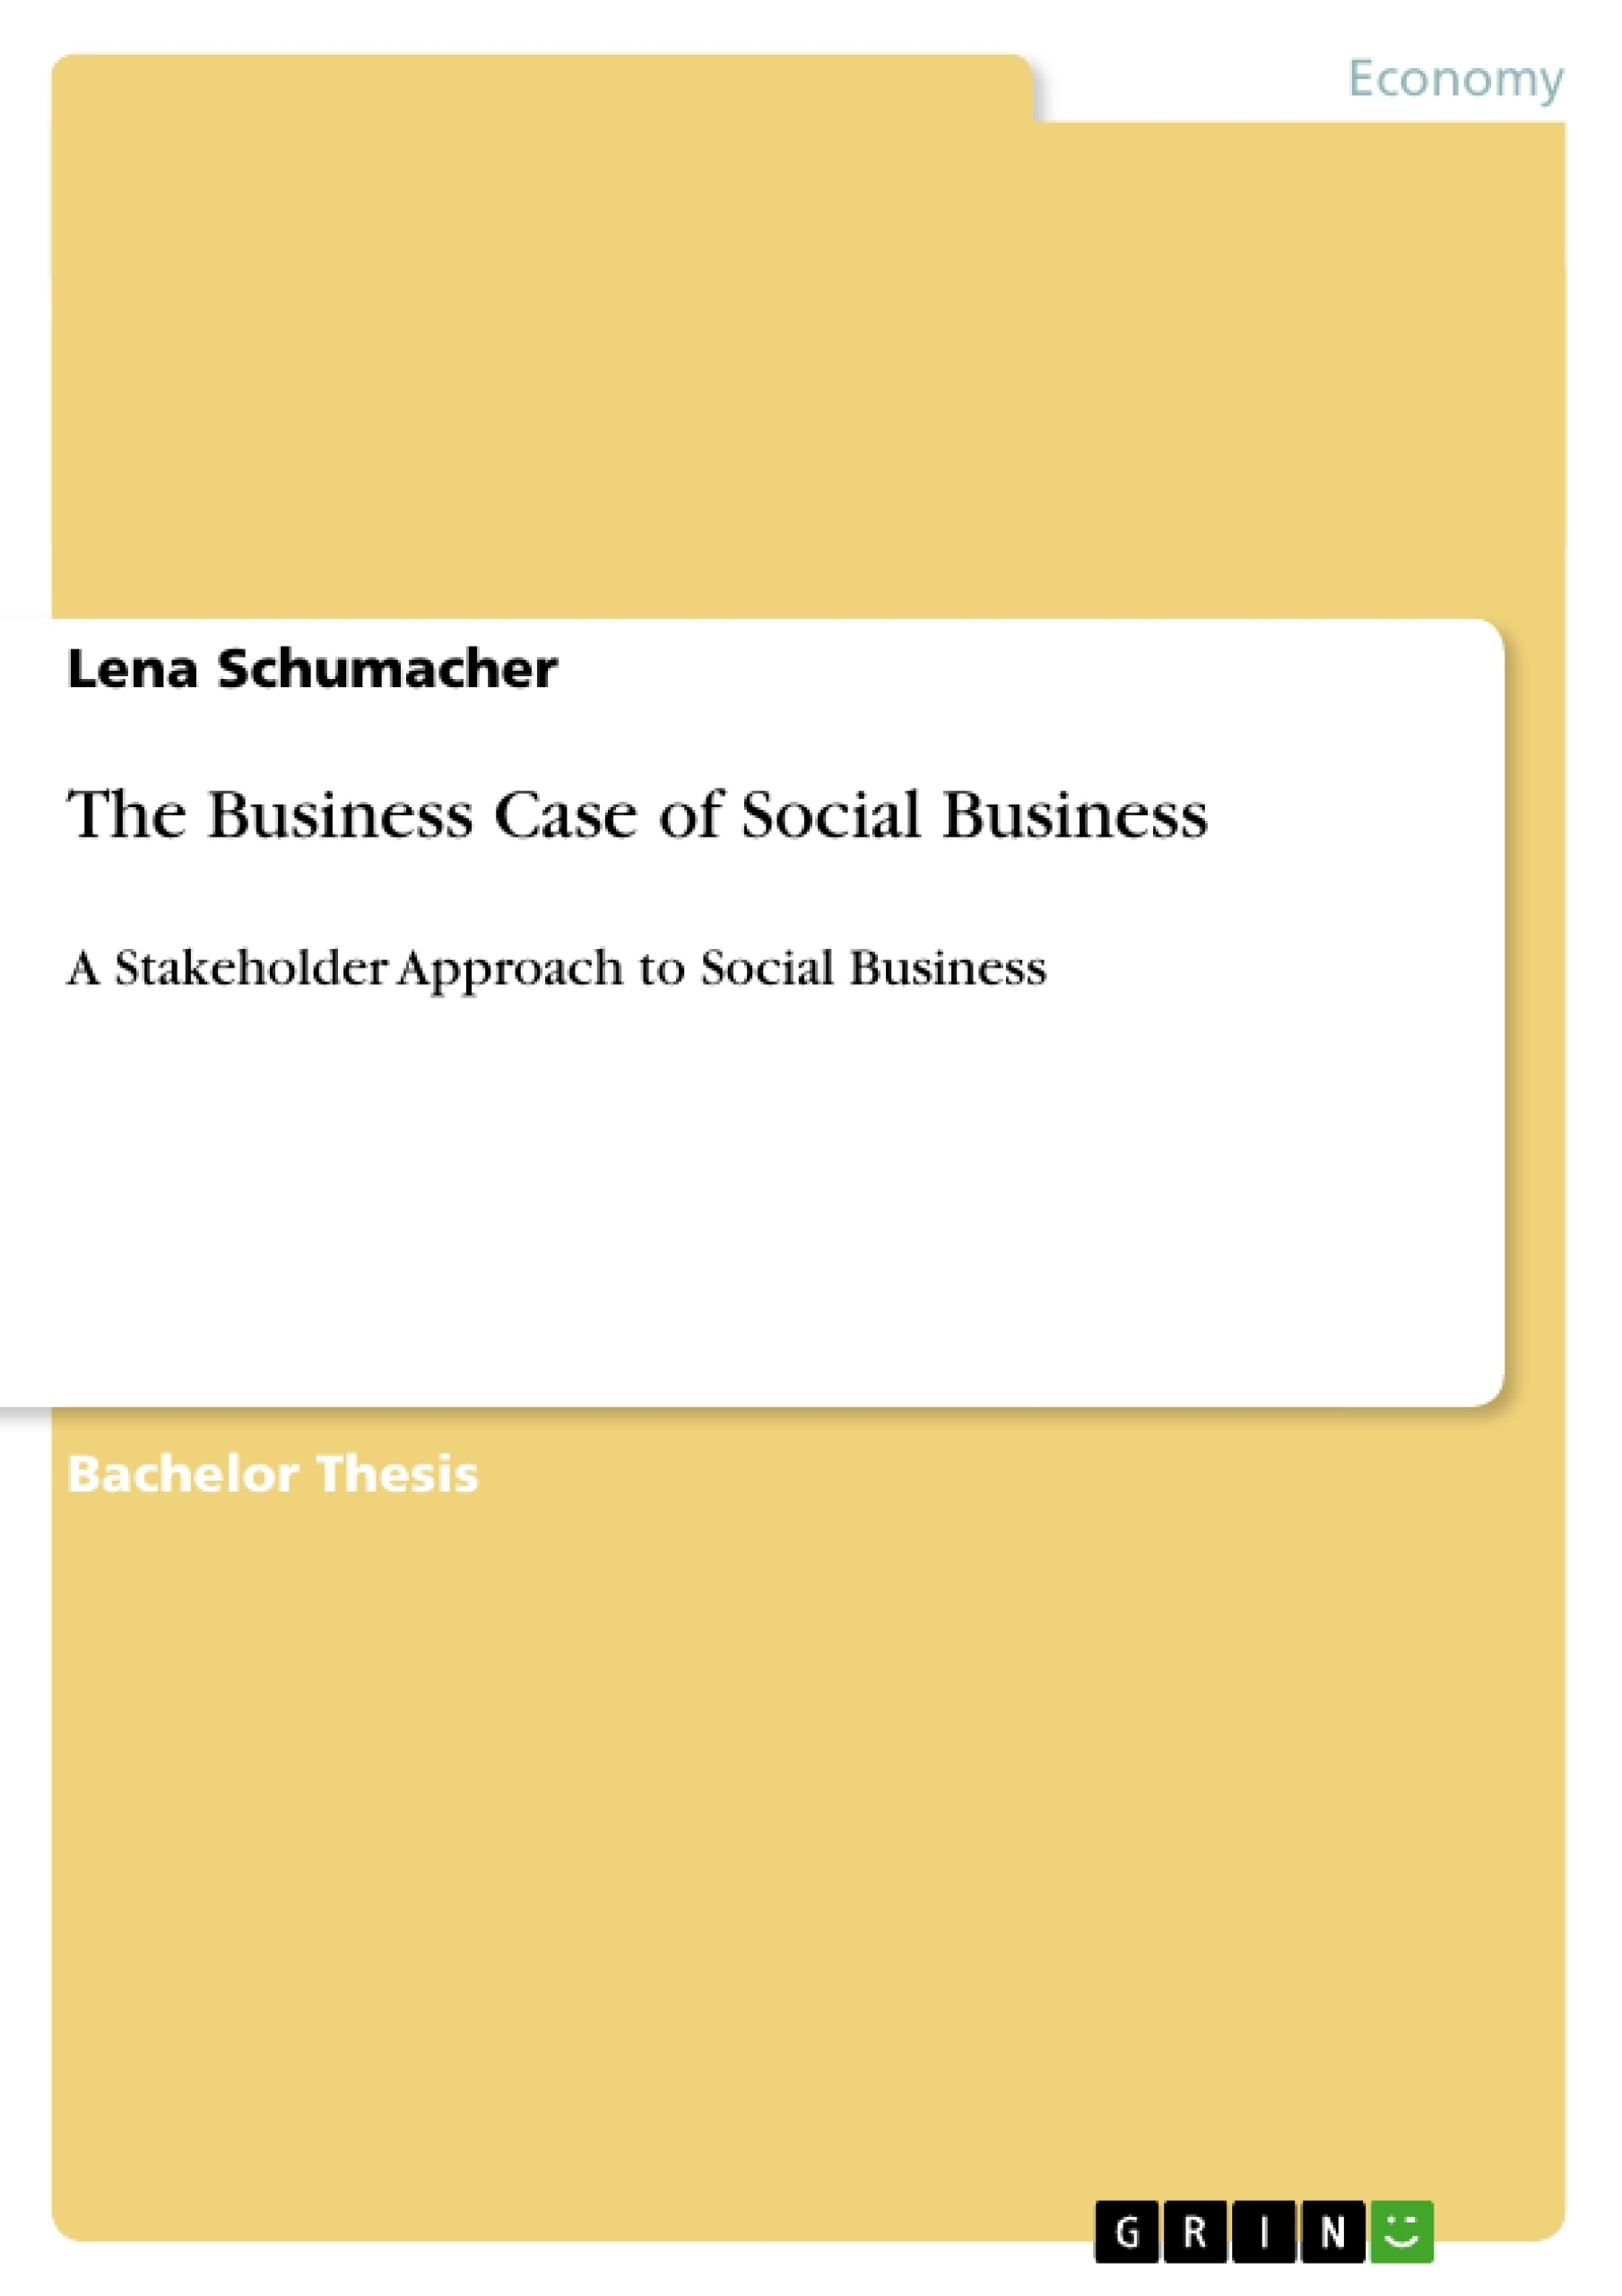 Title: The Business Case of Social Business